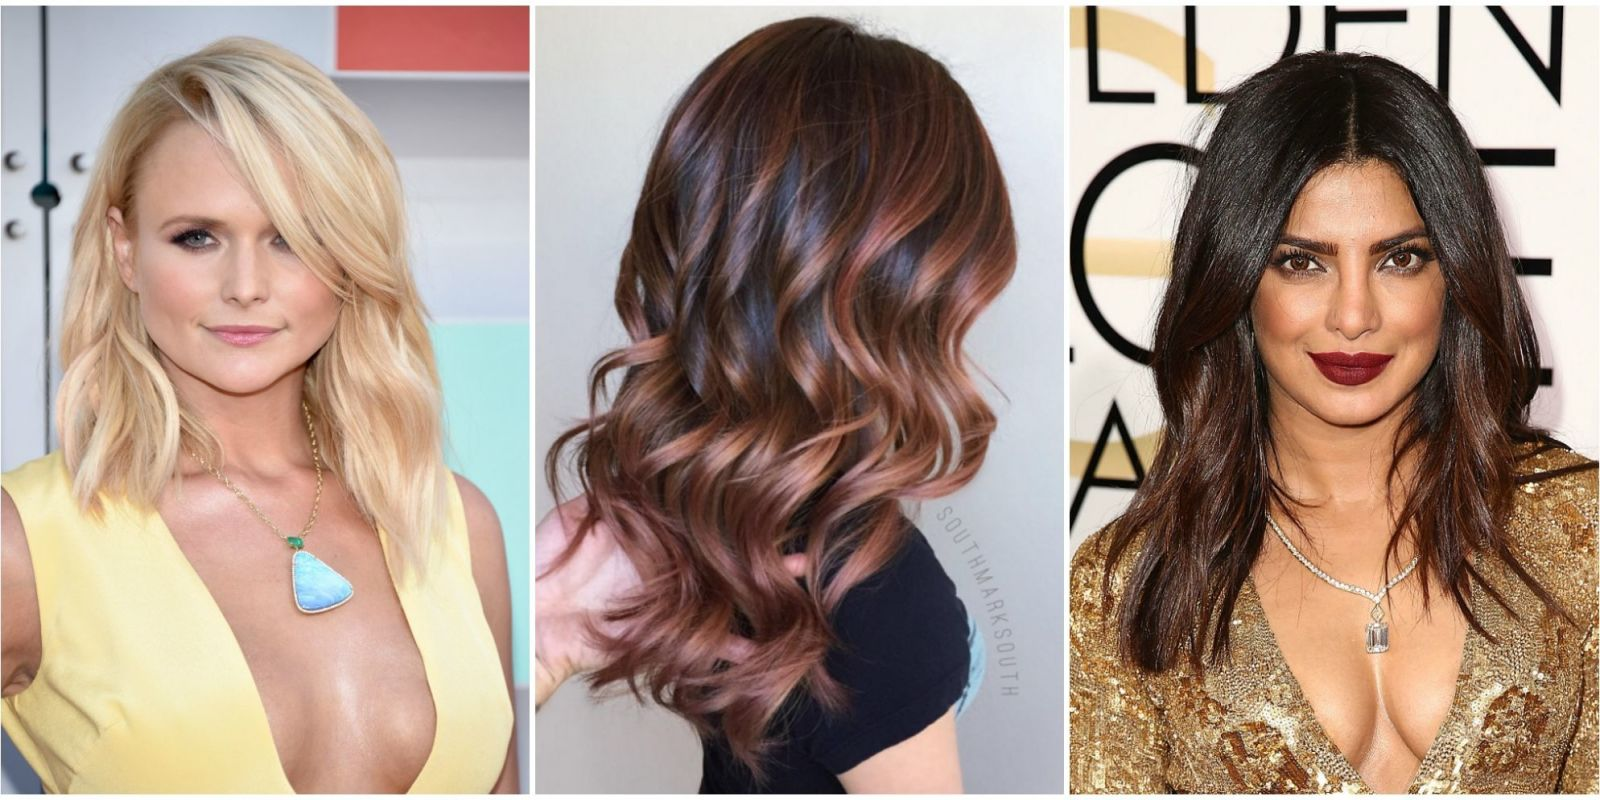 Hair Color Styles: New Hair Color Ideas For 2017